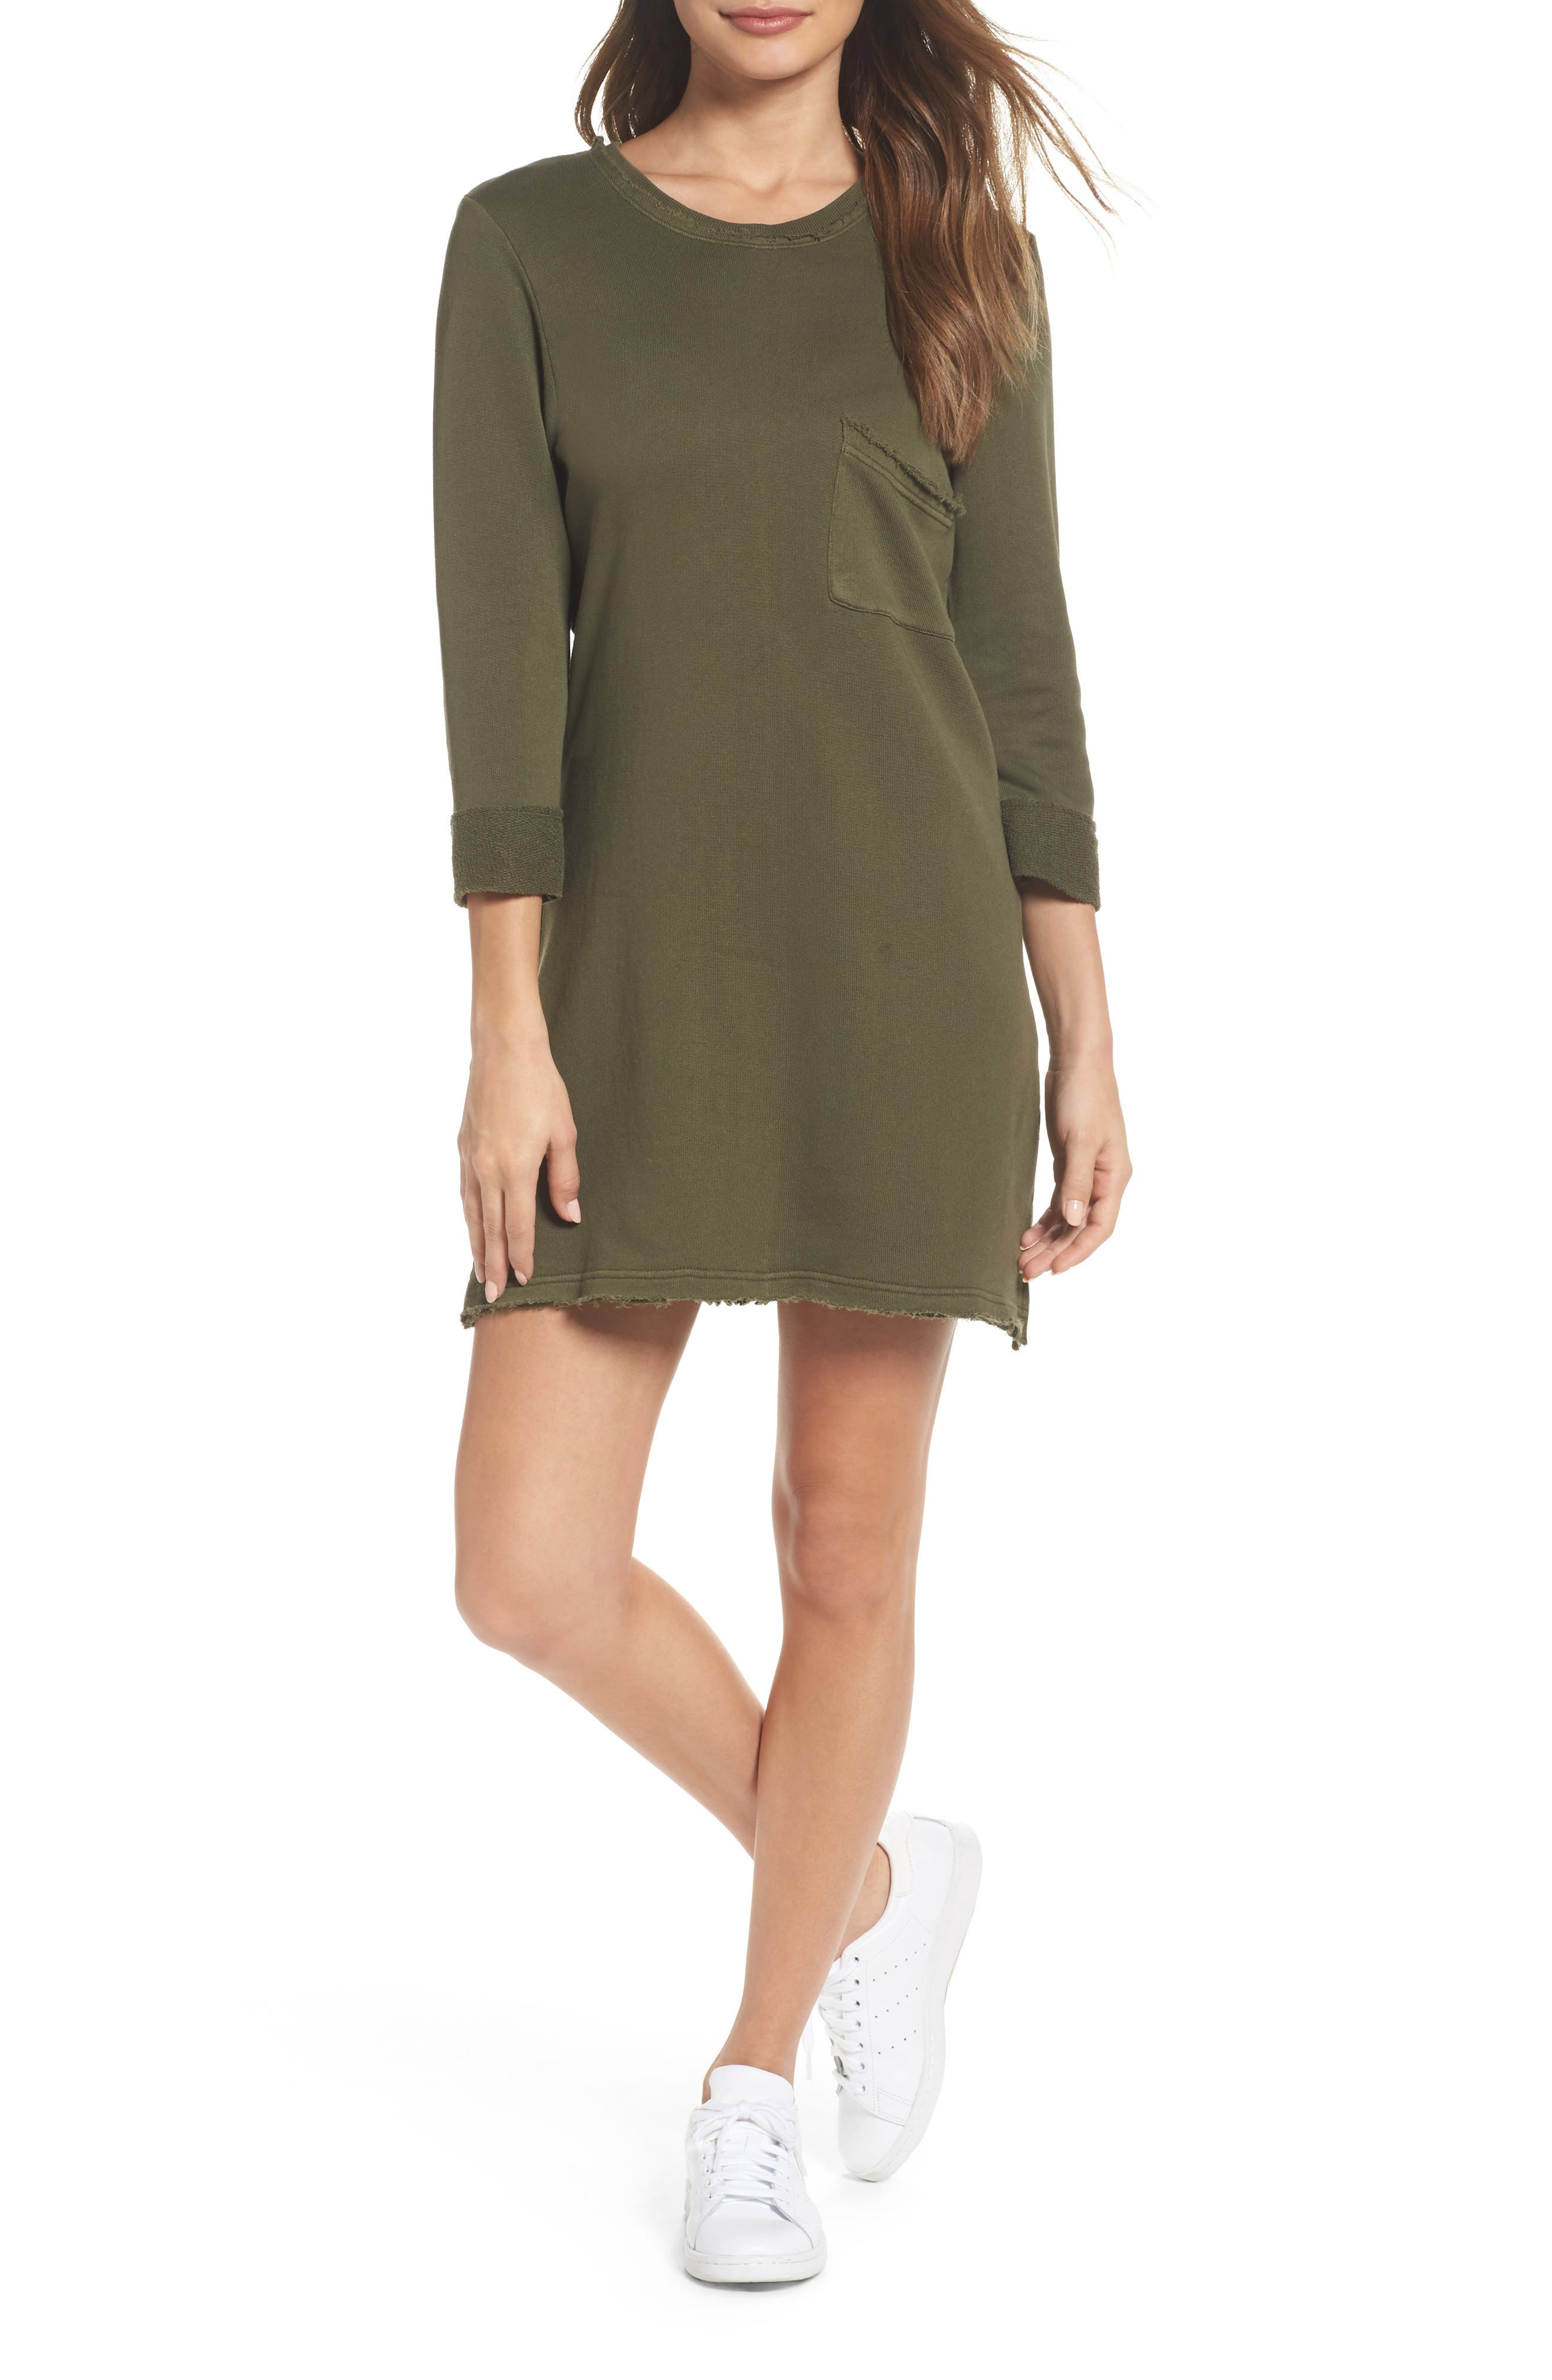 Main Image - Knot Sisters Chicago T-Shirt Dress